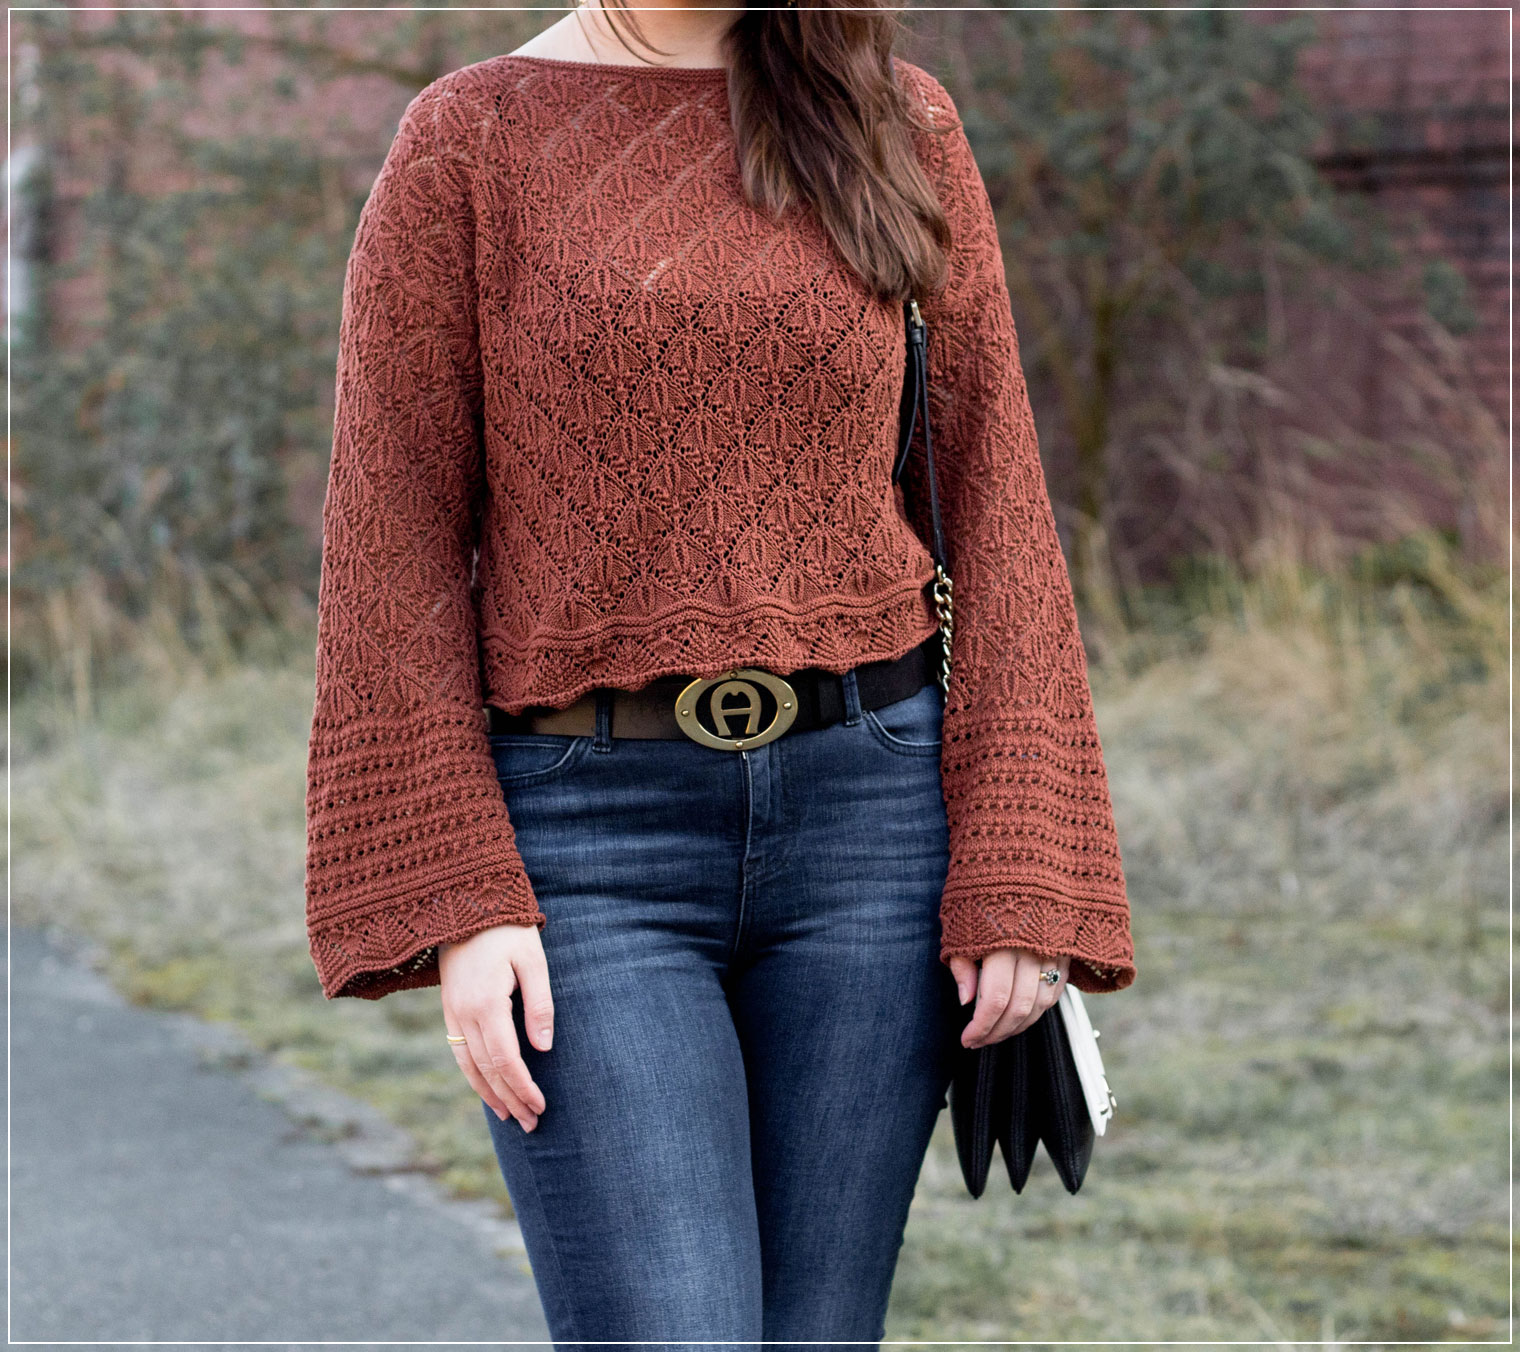 Braun, Trendfarbe, Modetrend, Sommerlook, Frühlingsoutfit, Boho-Style, Sommeroutfit, Styleguide, Outfitinspiration, Winterstyle, Alltagslook, Modebloggerin, Fashionbloggerin, Modeblog, Ruhrgebiet